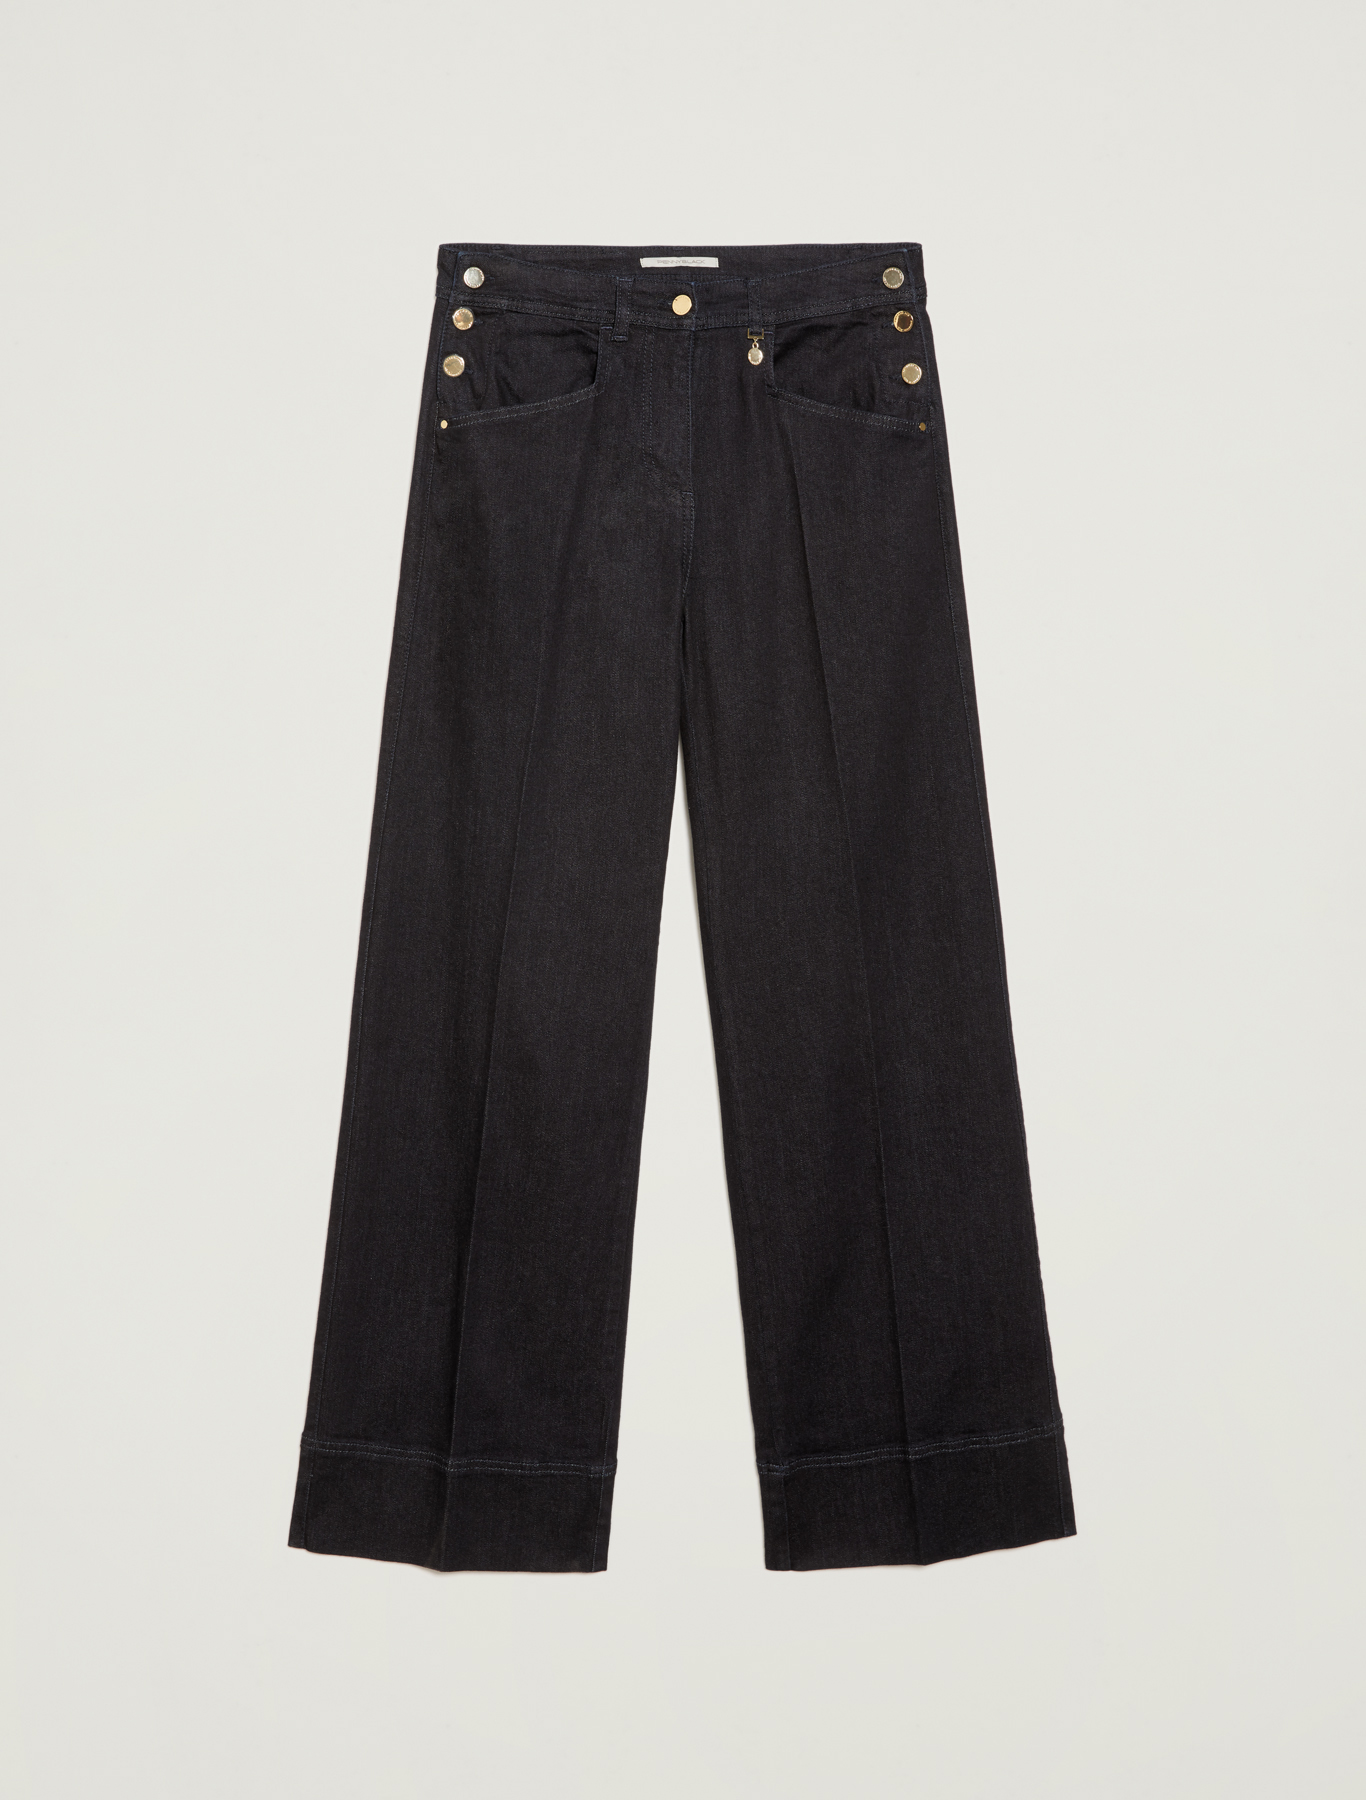 Dark blue wide-leg jeans - midnight blue - pennyblack